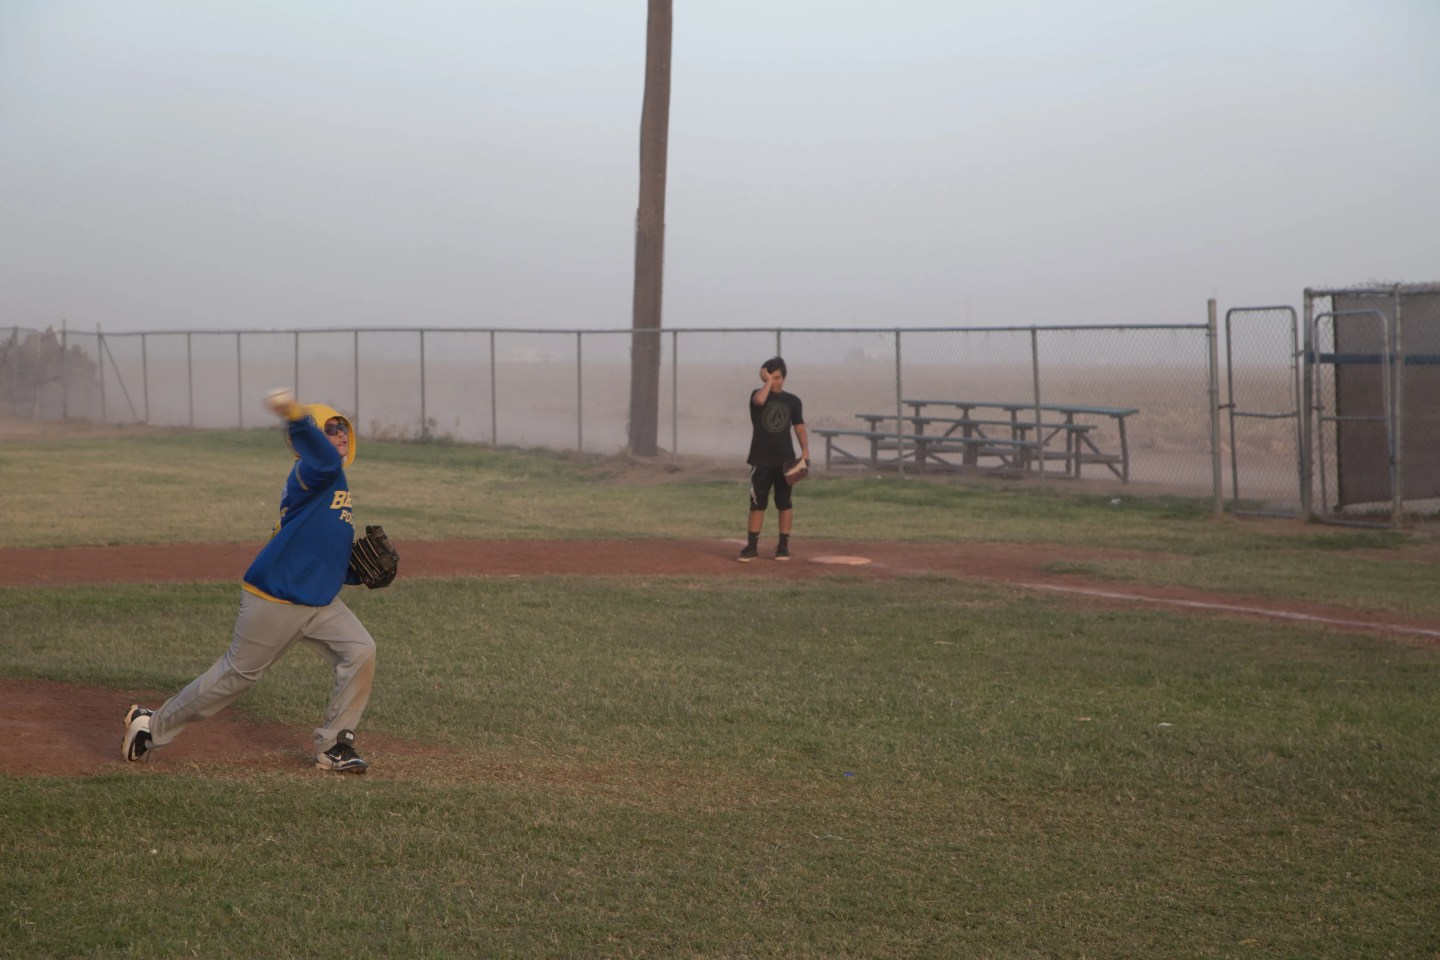 Kids play baseball during a dust storm in Westmorland, Calif., on March 30, 2017.